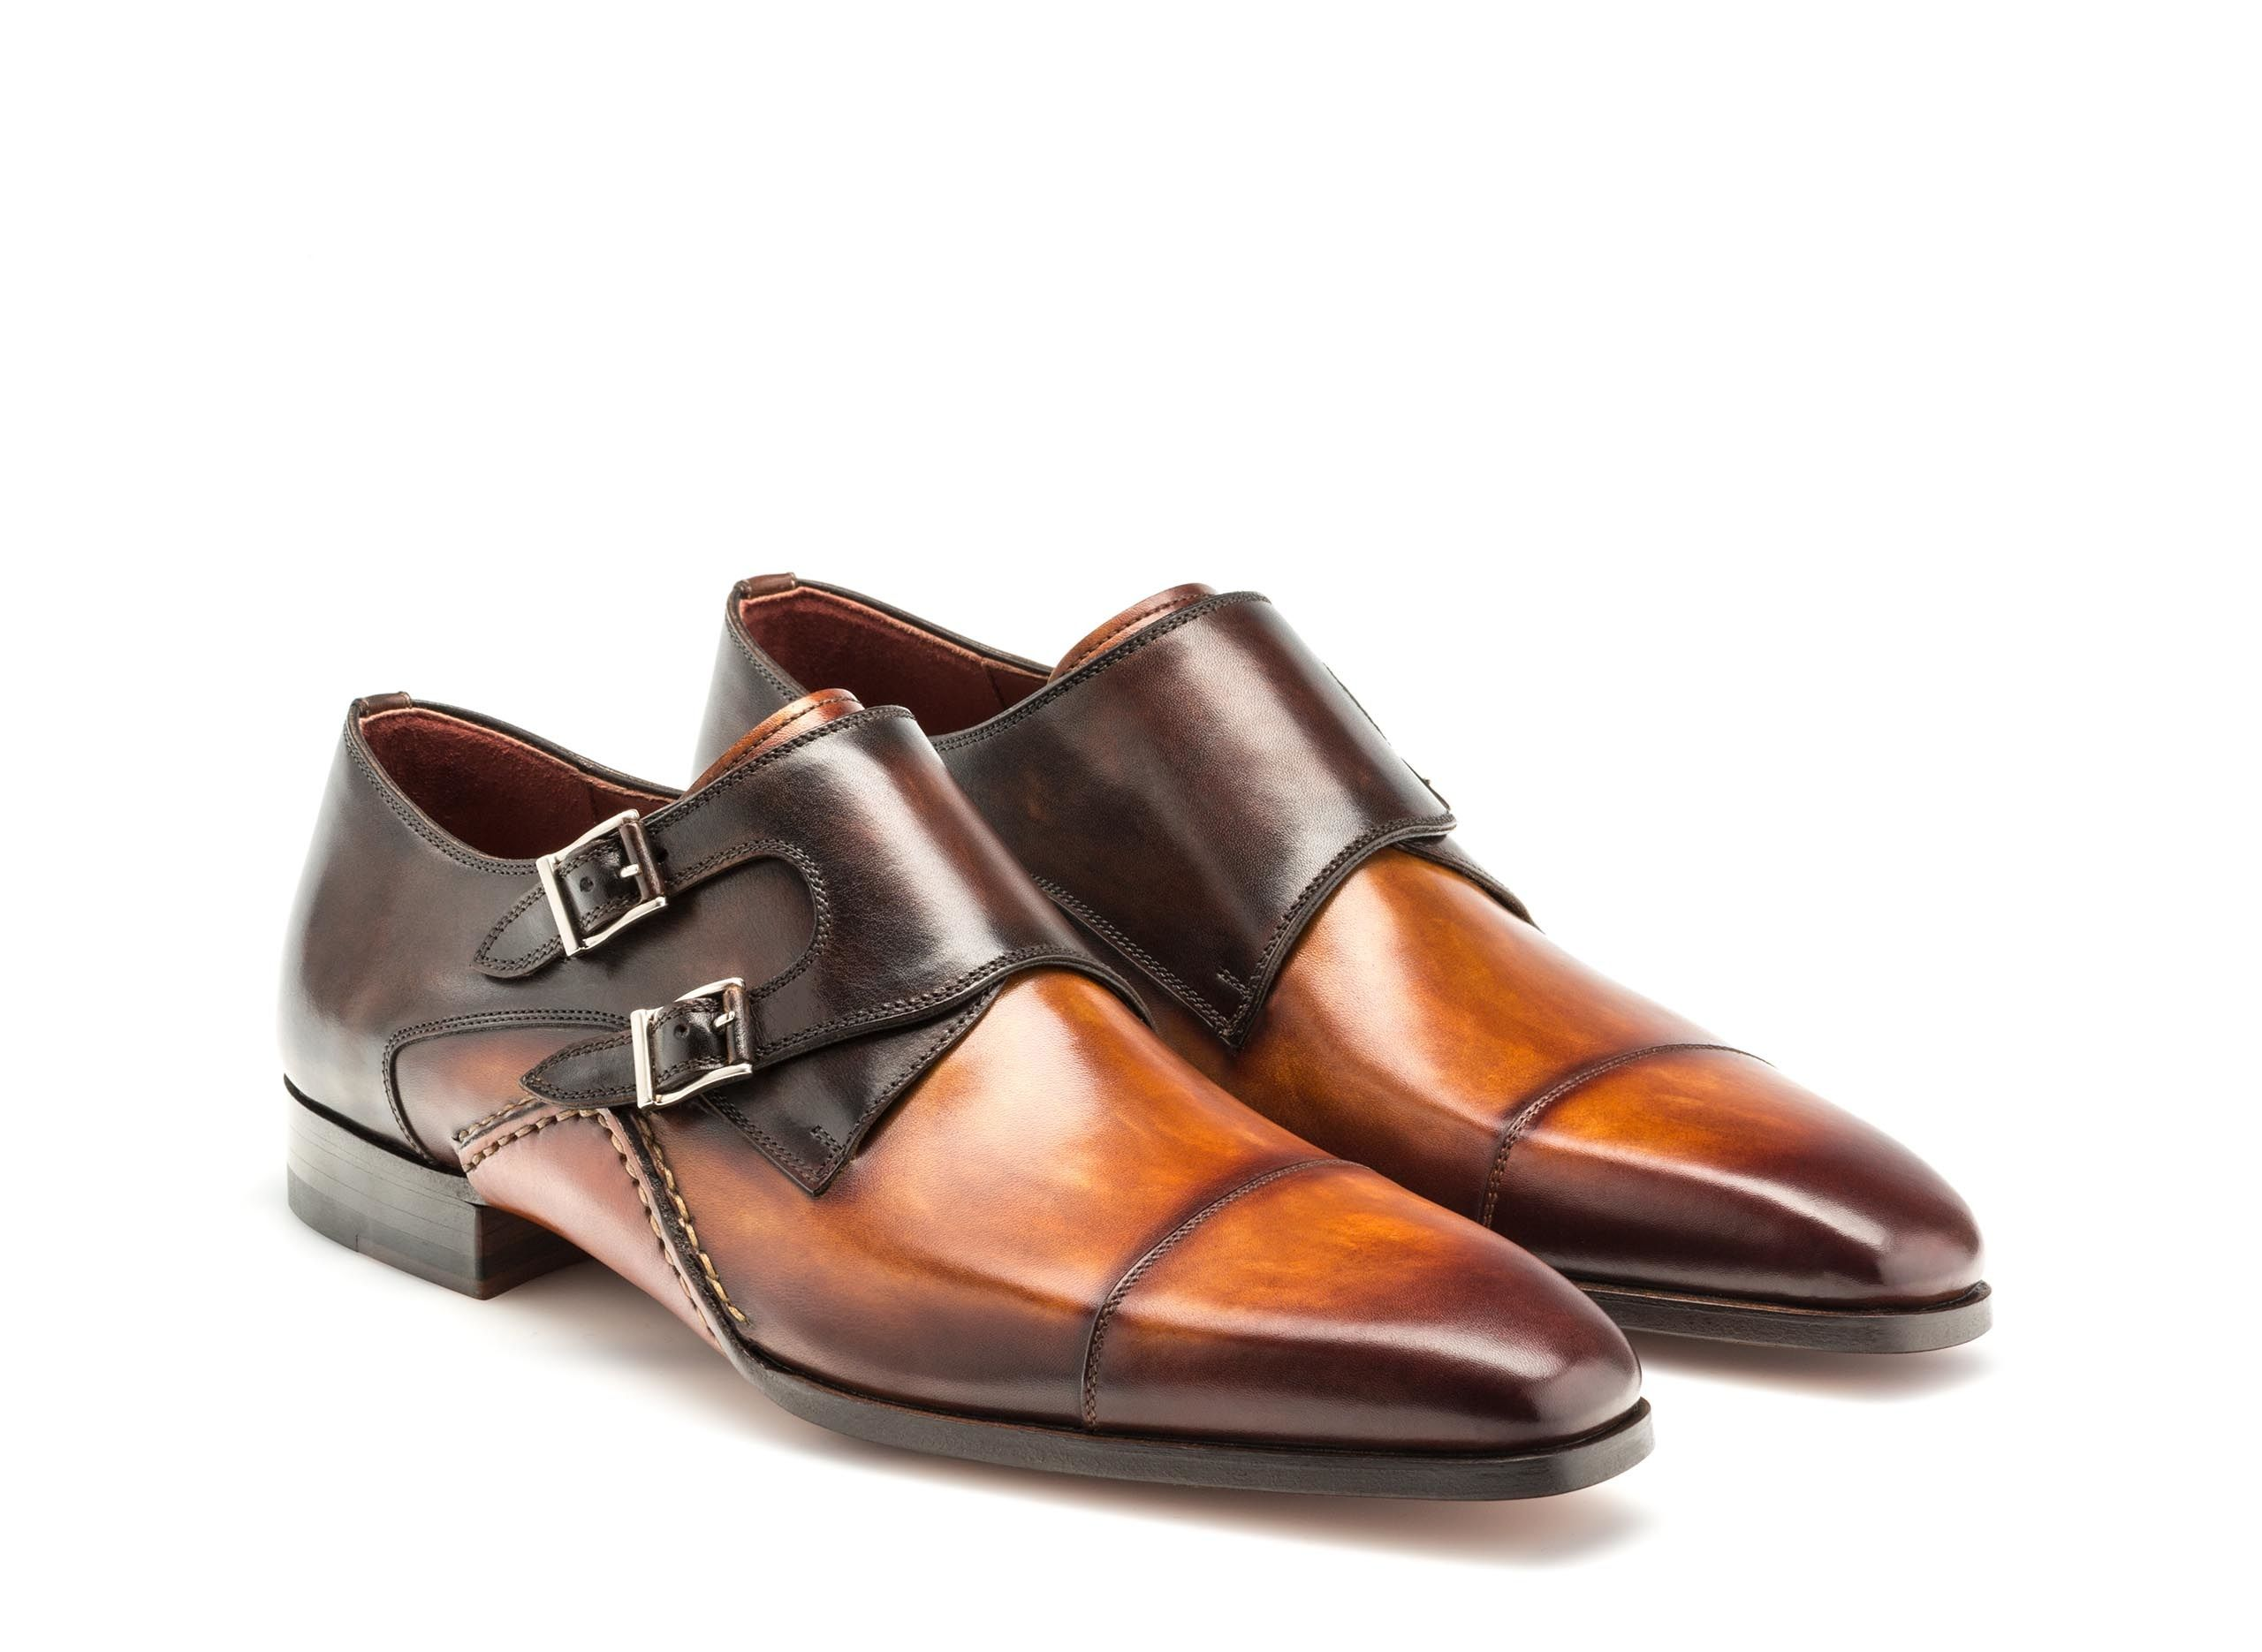 ed93f62dce4 Hand painted dual-tone leather double monk strap shoes for men - Magnanni